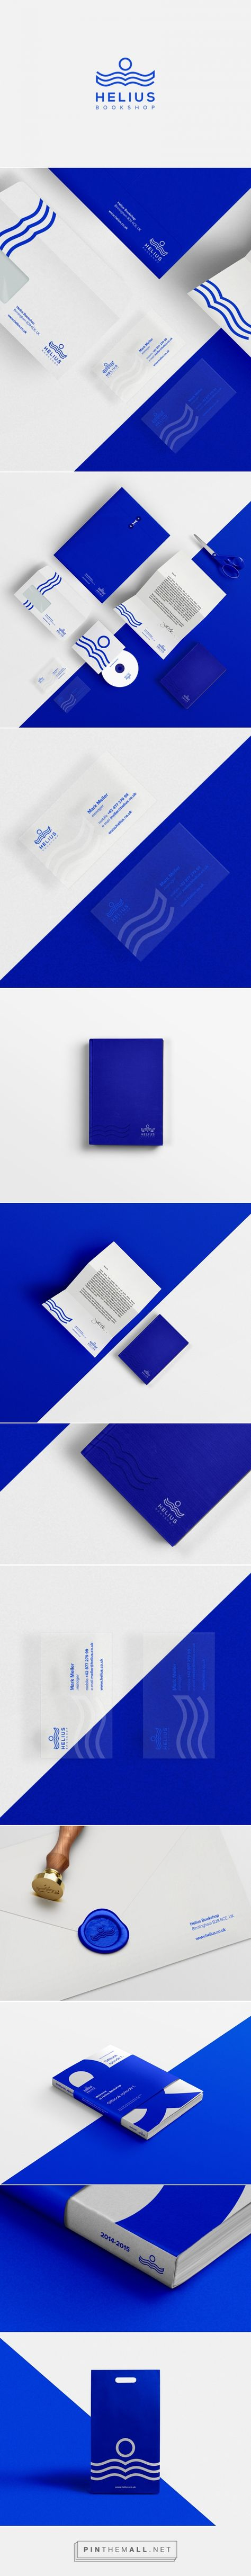 Helius bookshop on Behance | Fivestar Branding – Design and Branding Agency & Inspiration Gallery